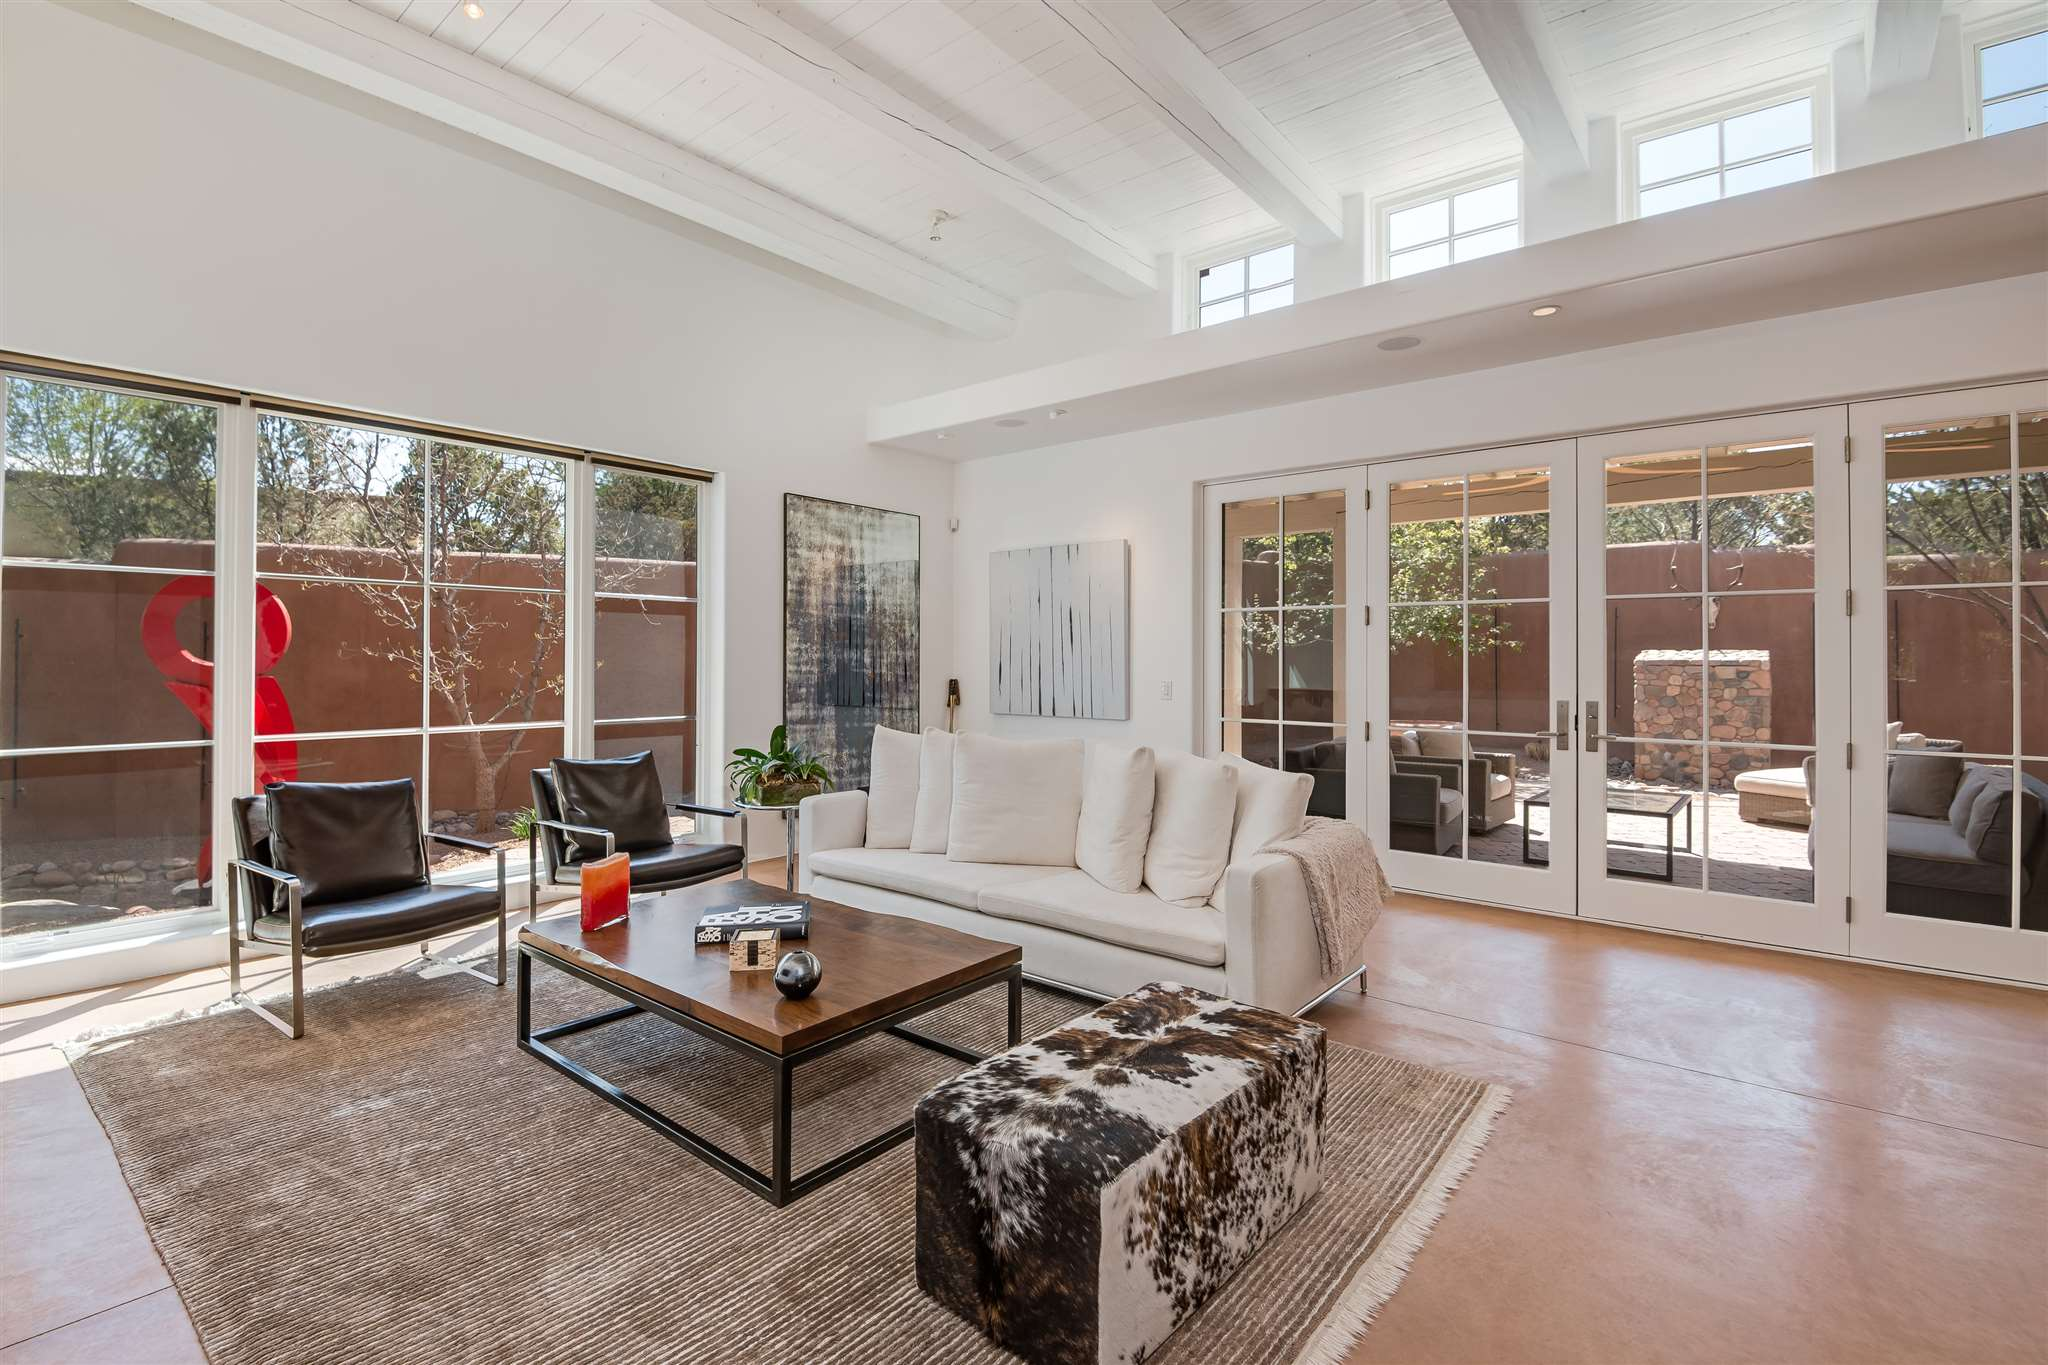 Rarely available and greatly coveted is this single level (no steps!), soft contemporary, energy efficient, 2 BR, 3BA home in the Historic Eastside within walking distance to Canyon Road and the Plaza. Built in 2011 by Doug McDowell, and located in the small, private compound of Las Placitas, this gorgeous 2,359 square foot residence offers an open floor plan with high beamed ceilings in the great room, a gourmet kitchen, ample wall space for your art collection, and wonderful natural light. The two bedrooms are well separated for privacy and enjoy en-suite bathrooms. The home also offers a powder room, oversized laundry room, and a 2-car garage.  Step out through the French doors onto an inviting portal nestled in a high walled garden with rock spillway fountain and outdoor fireplace perfect for entertaining.  Other features include concrete floors, custom woodwork, an irrigation system, and solid masonry construction (ICF).  This residence is also LEED Gold Certified and includes a state-of-the-art efficiency evaporative cooling system, air filtration system, photovoltaic electric power, in-floor radiant heat, a solar domestic hot water heater, and a home water catchment system.